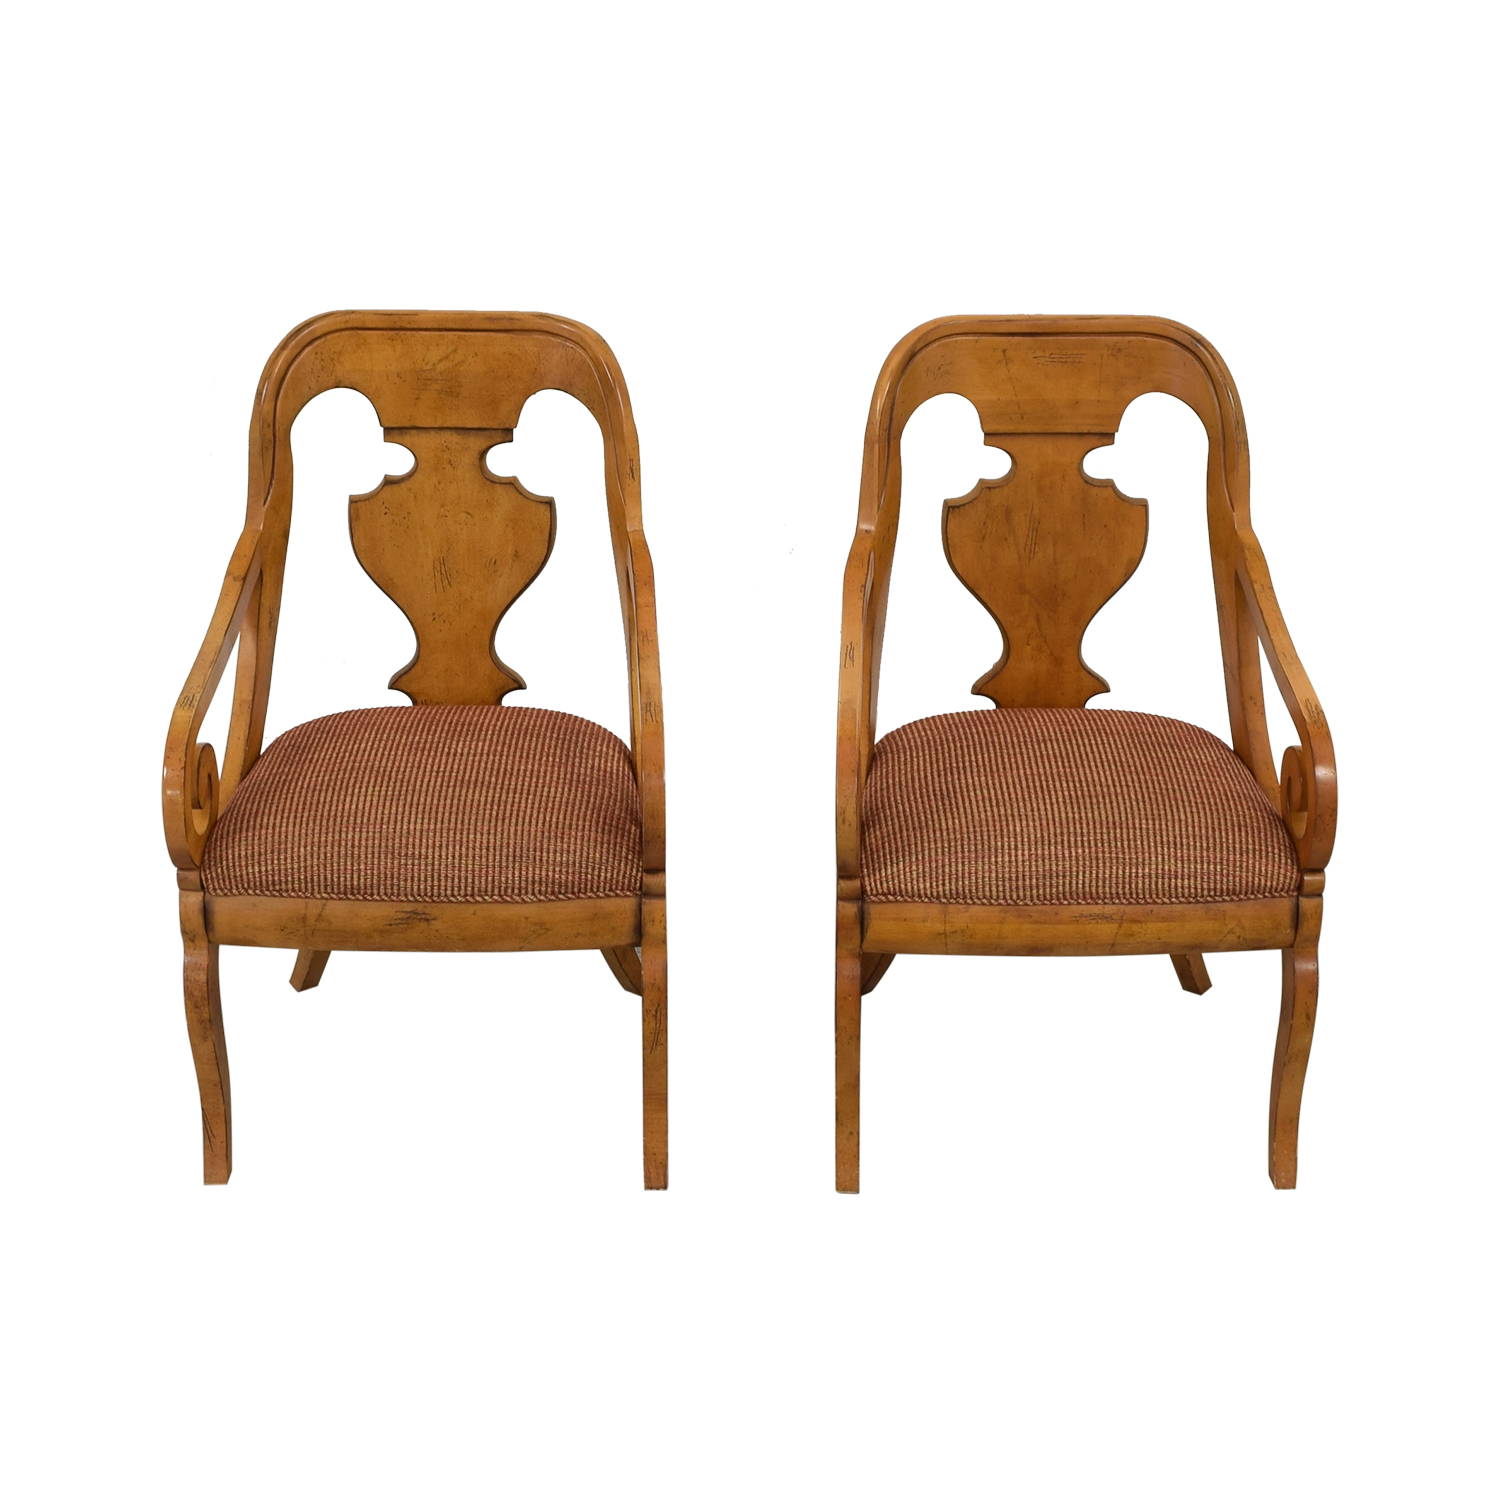 Lillian August Upholstered Side Chairs / Chairs